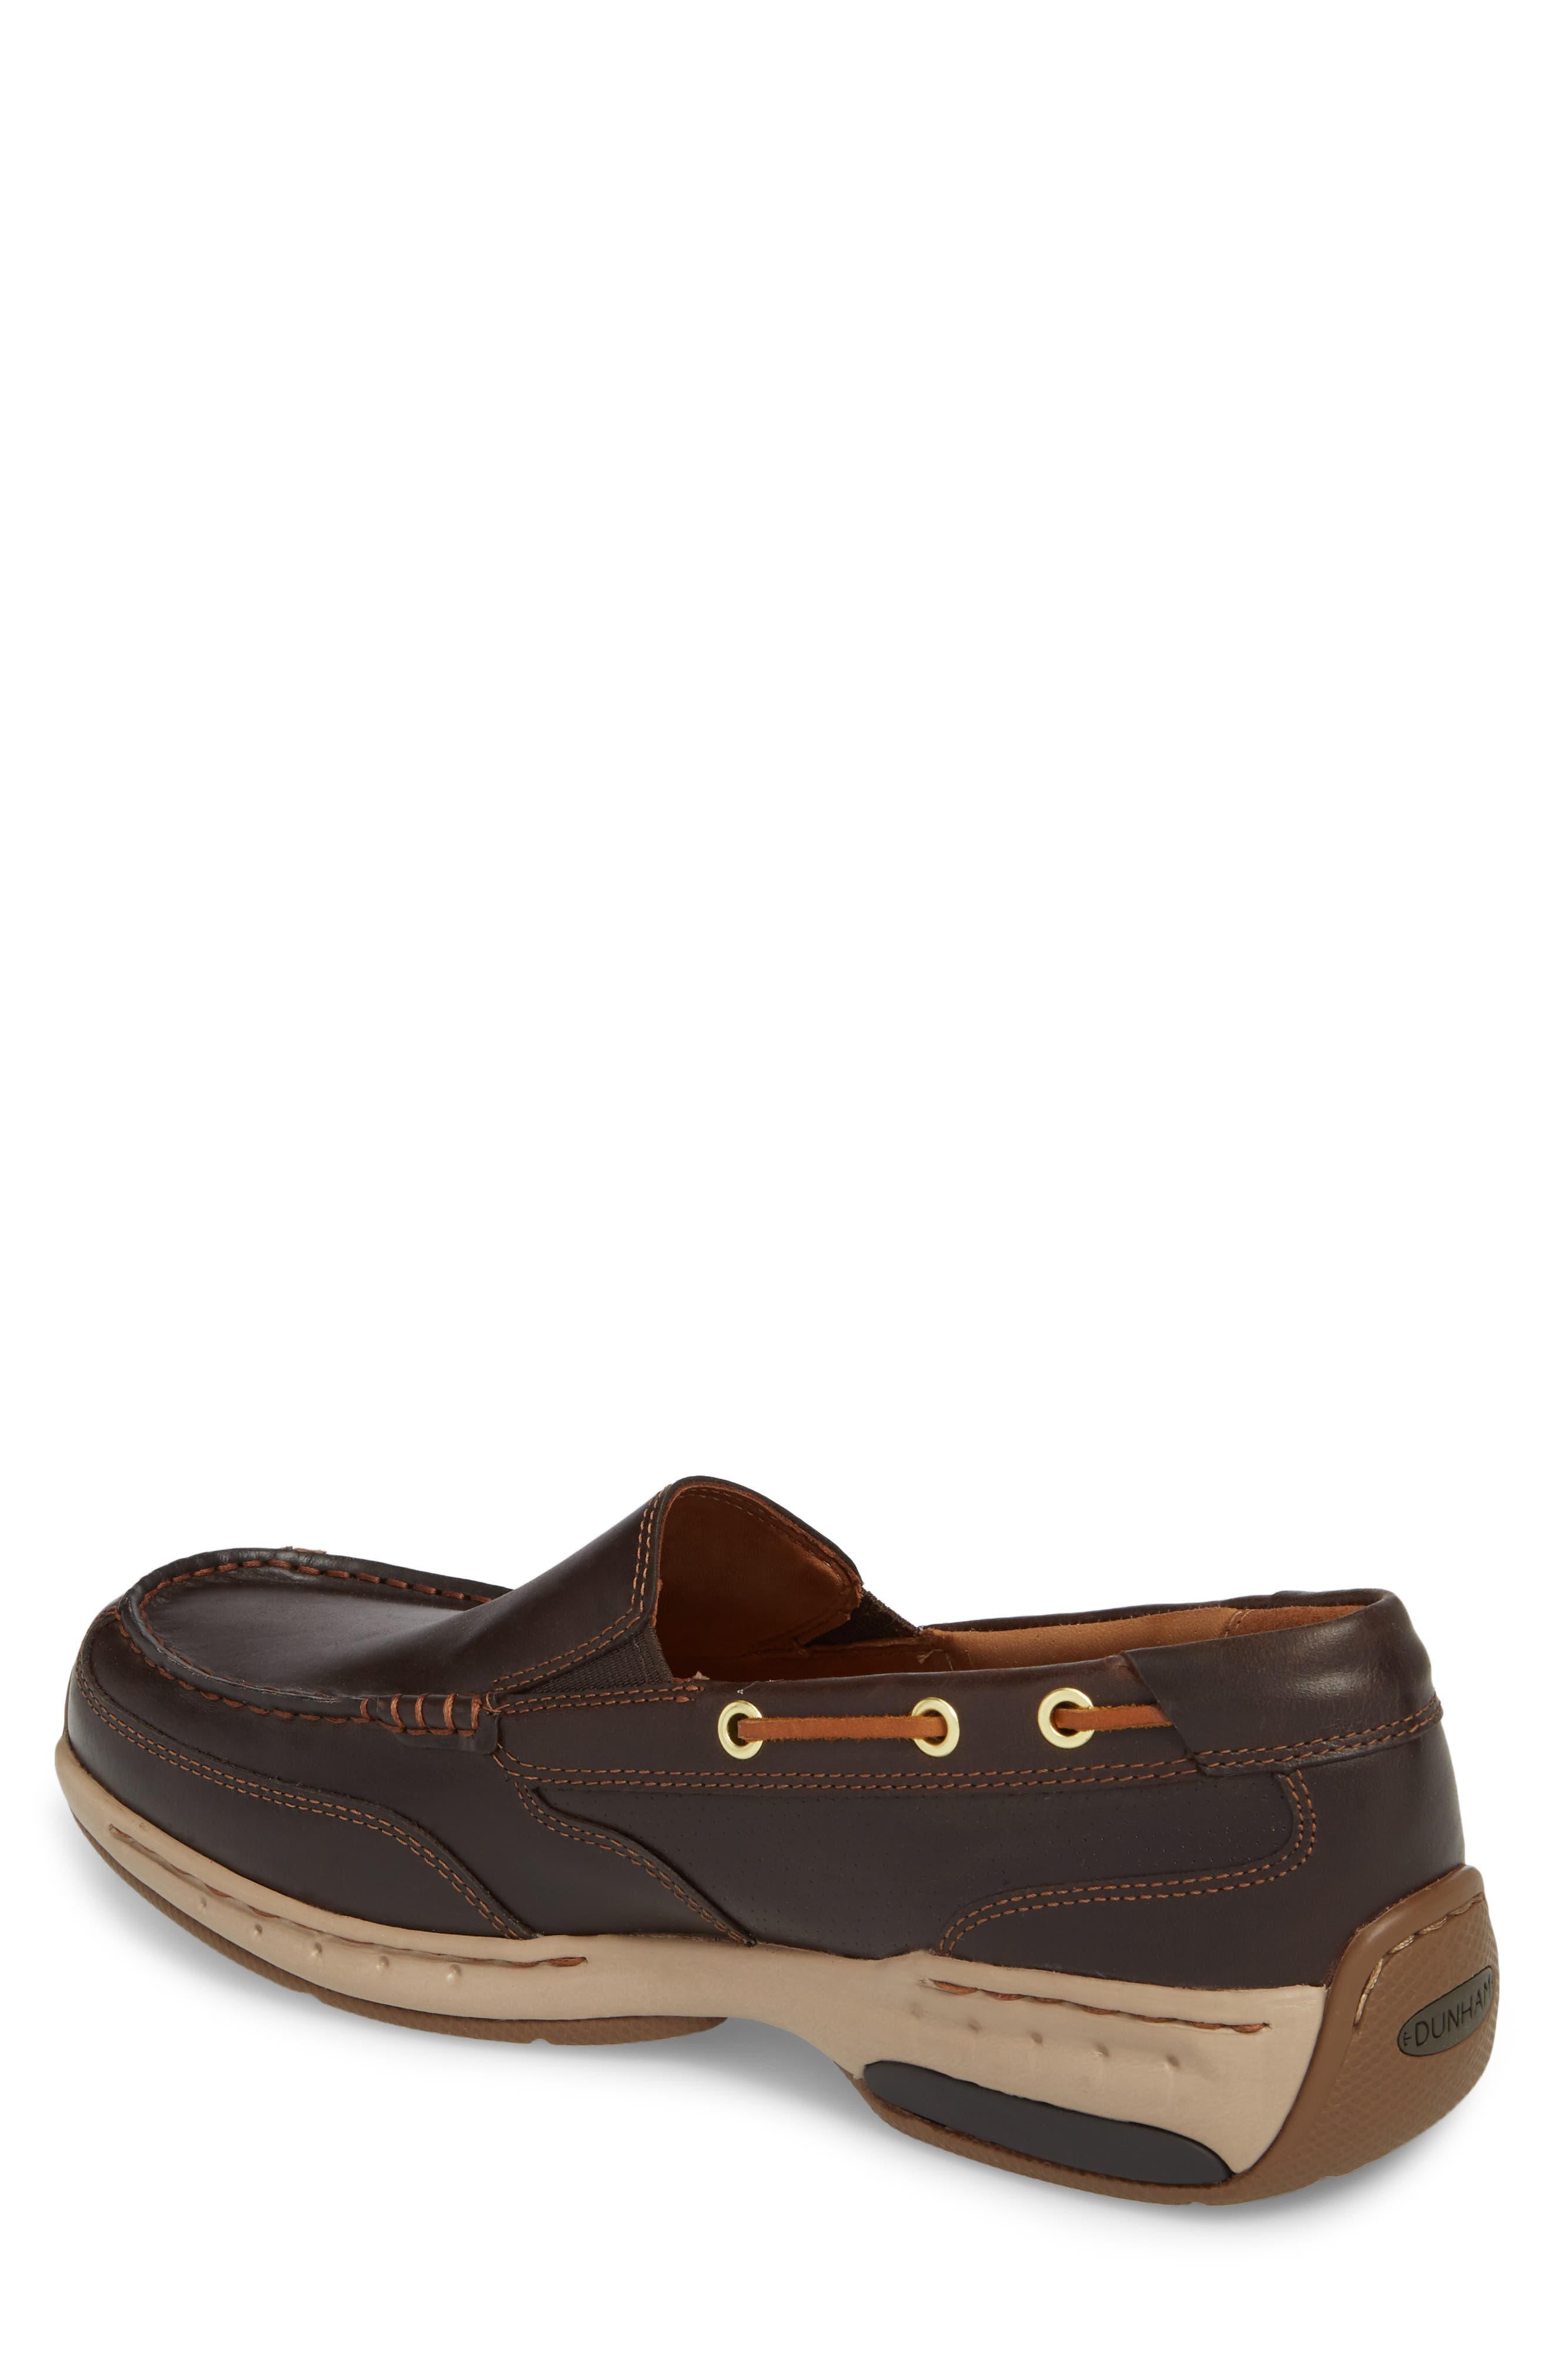 DUNHAM, Waterford Water Resistant Slip-On, Alternate thumbnail 2, color, TAN LEATHER